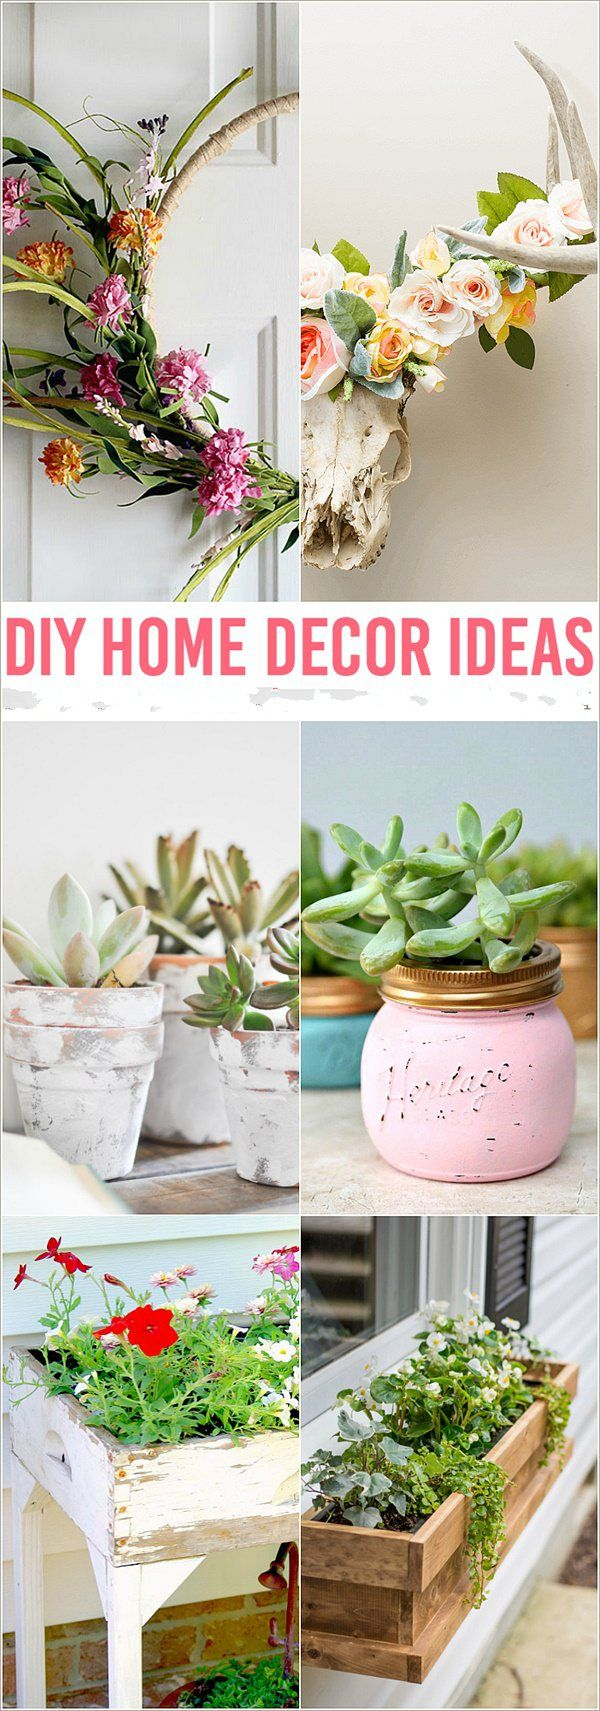 Spring Inspiration Home Décor Ideas That Will Make Your Home…